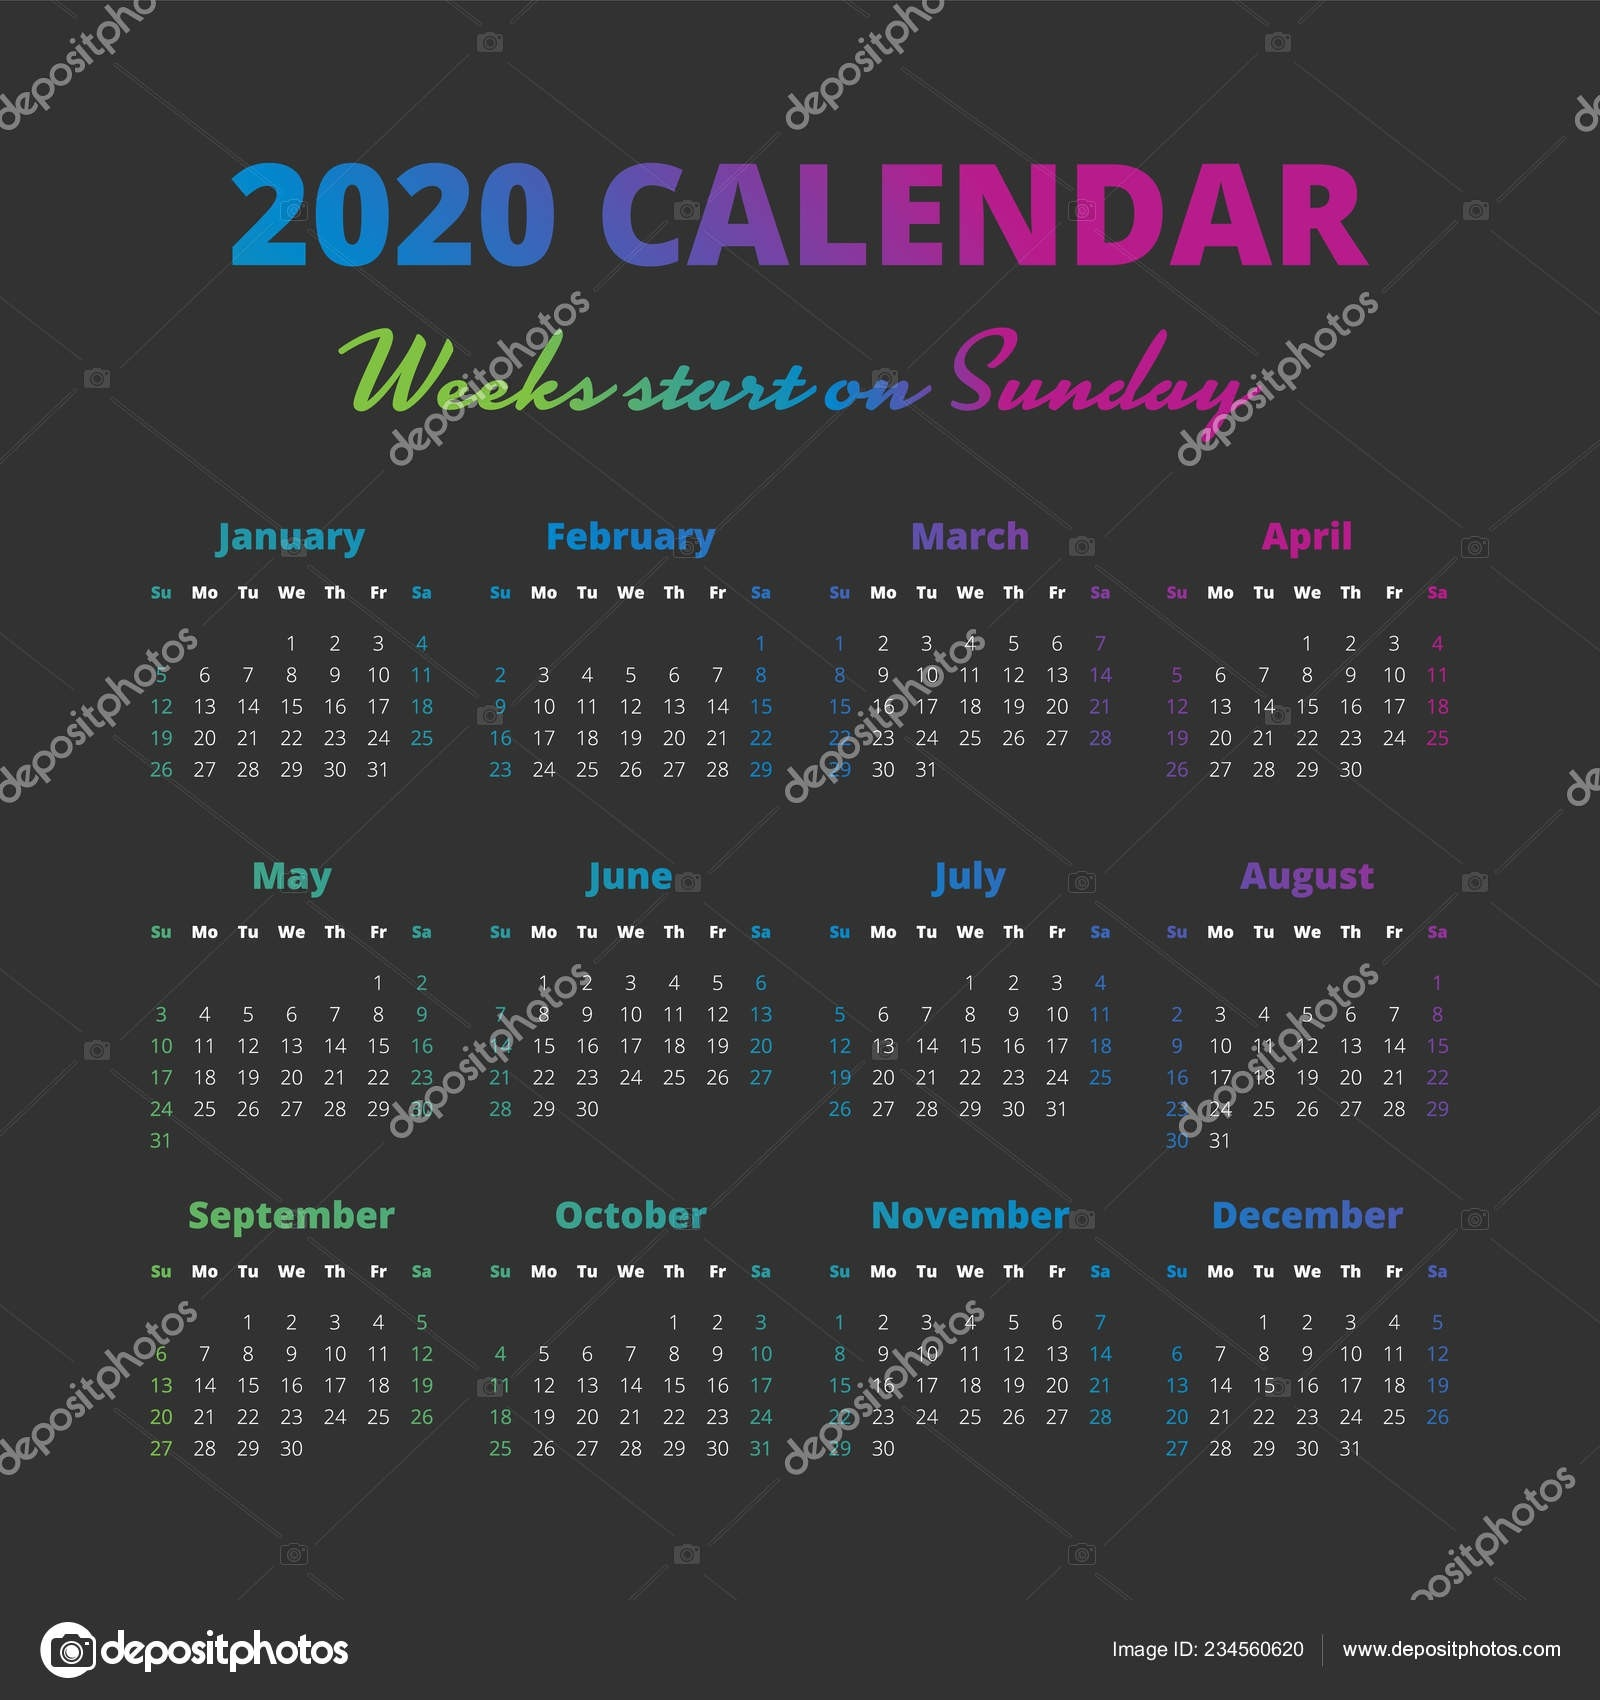 Simple 2020 Year Calendar, Weeks Start On Sunday — Stock  15 Week Schedule Depo Schedule 2020